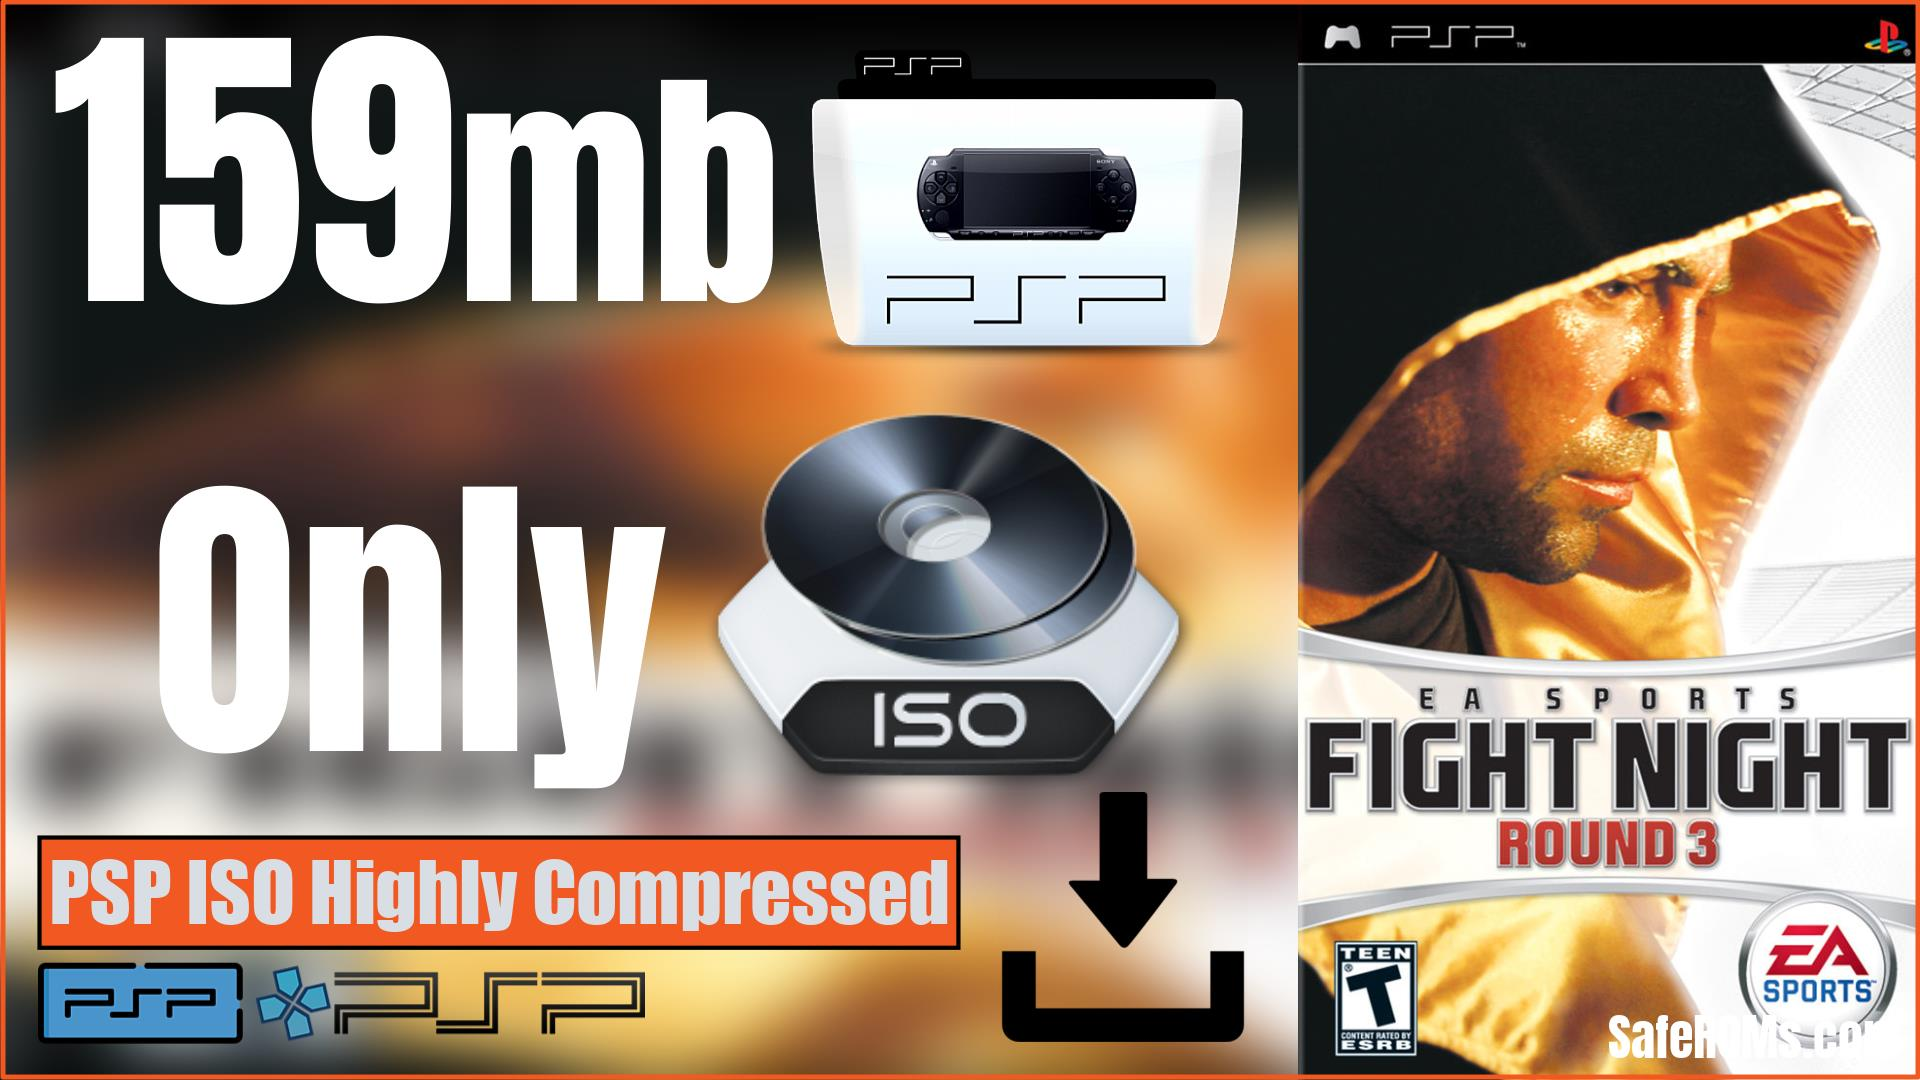 Fight Night Round 3 PSP ISO Highly Compressed Download